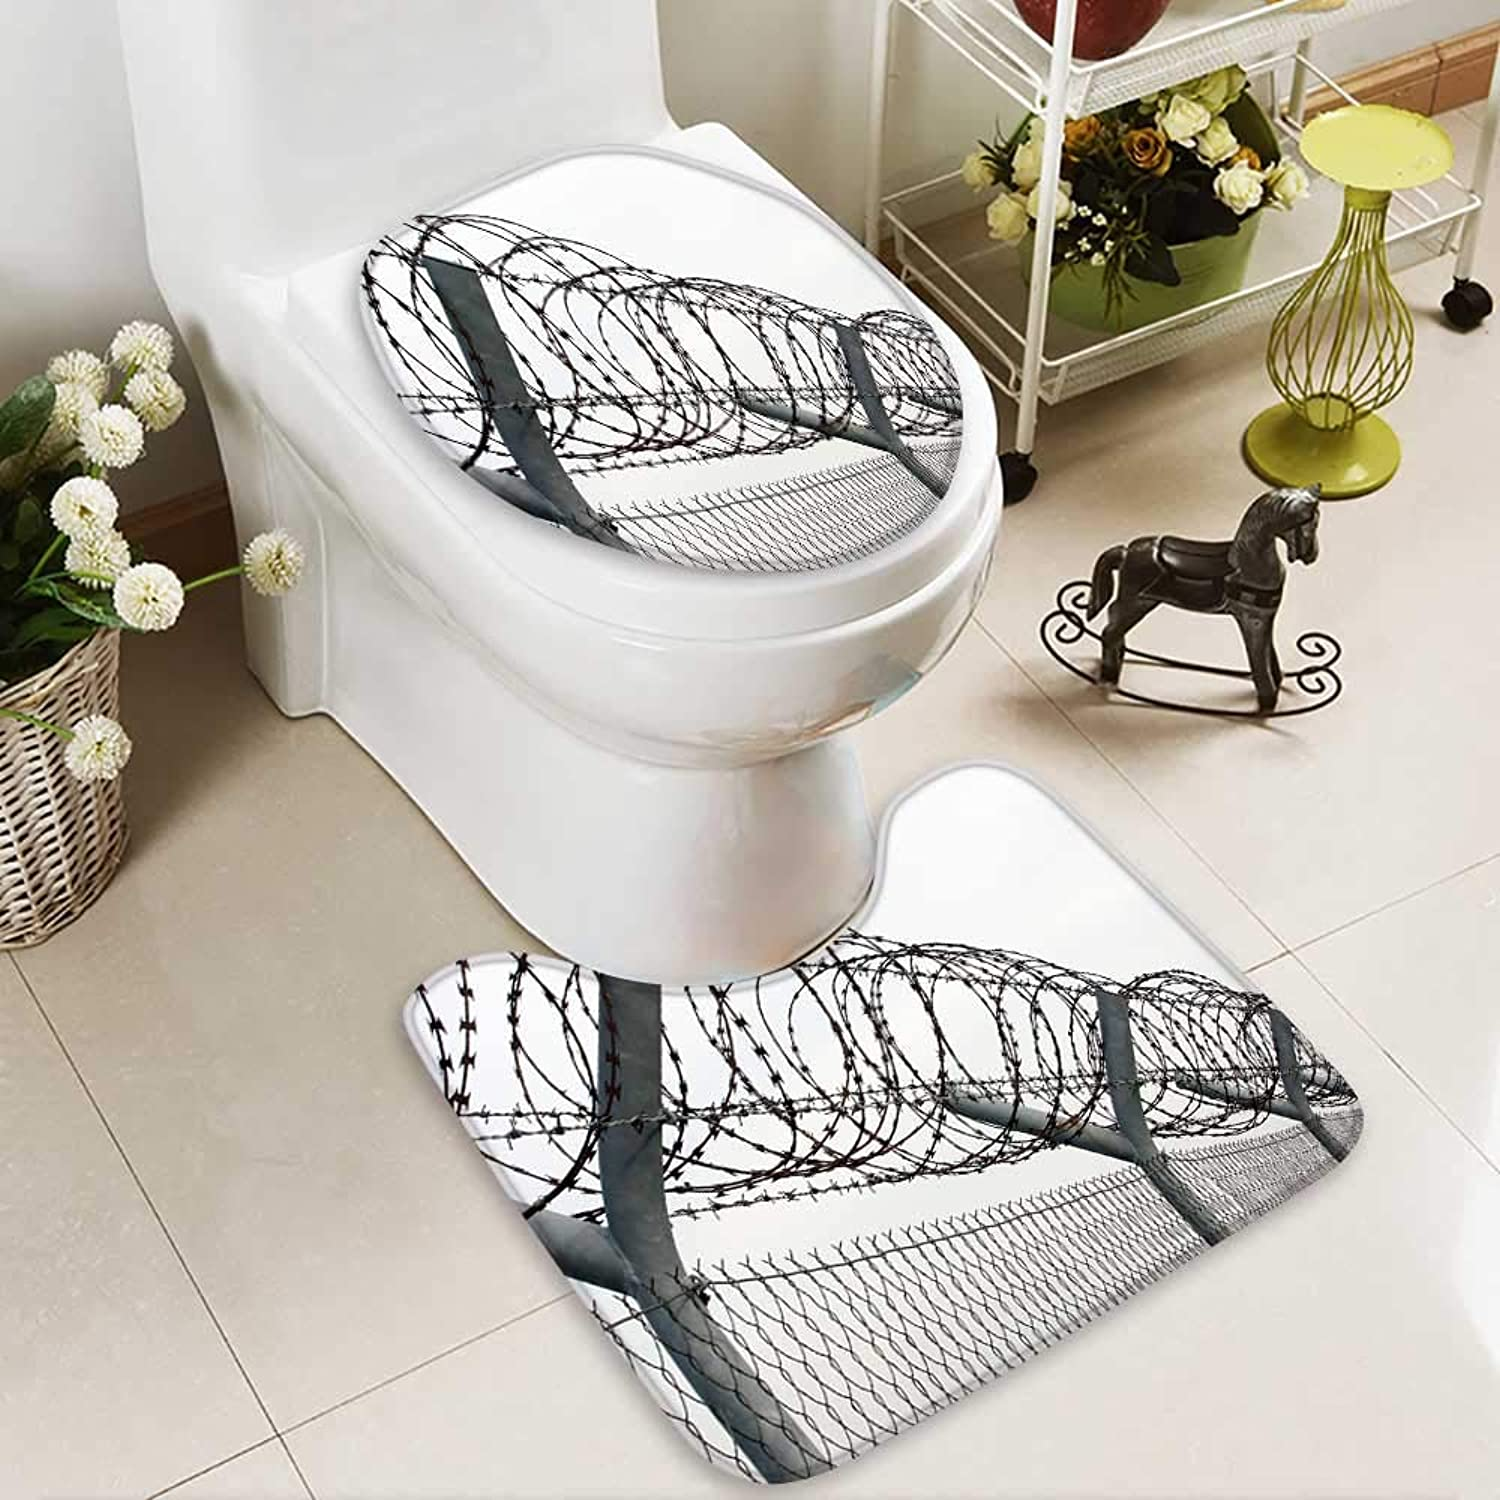 Aolankaili Cushion Non-Slip Toilet Mat Fence a Barbed Wire Soft Non-Slip Water